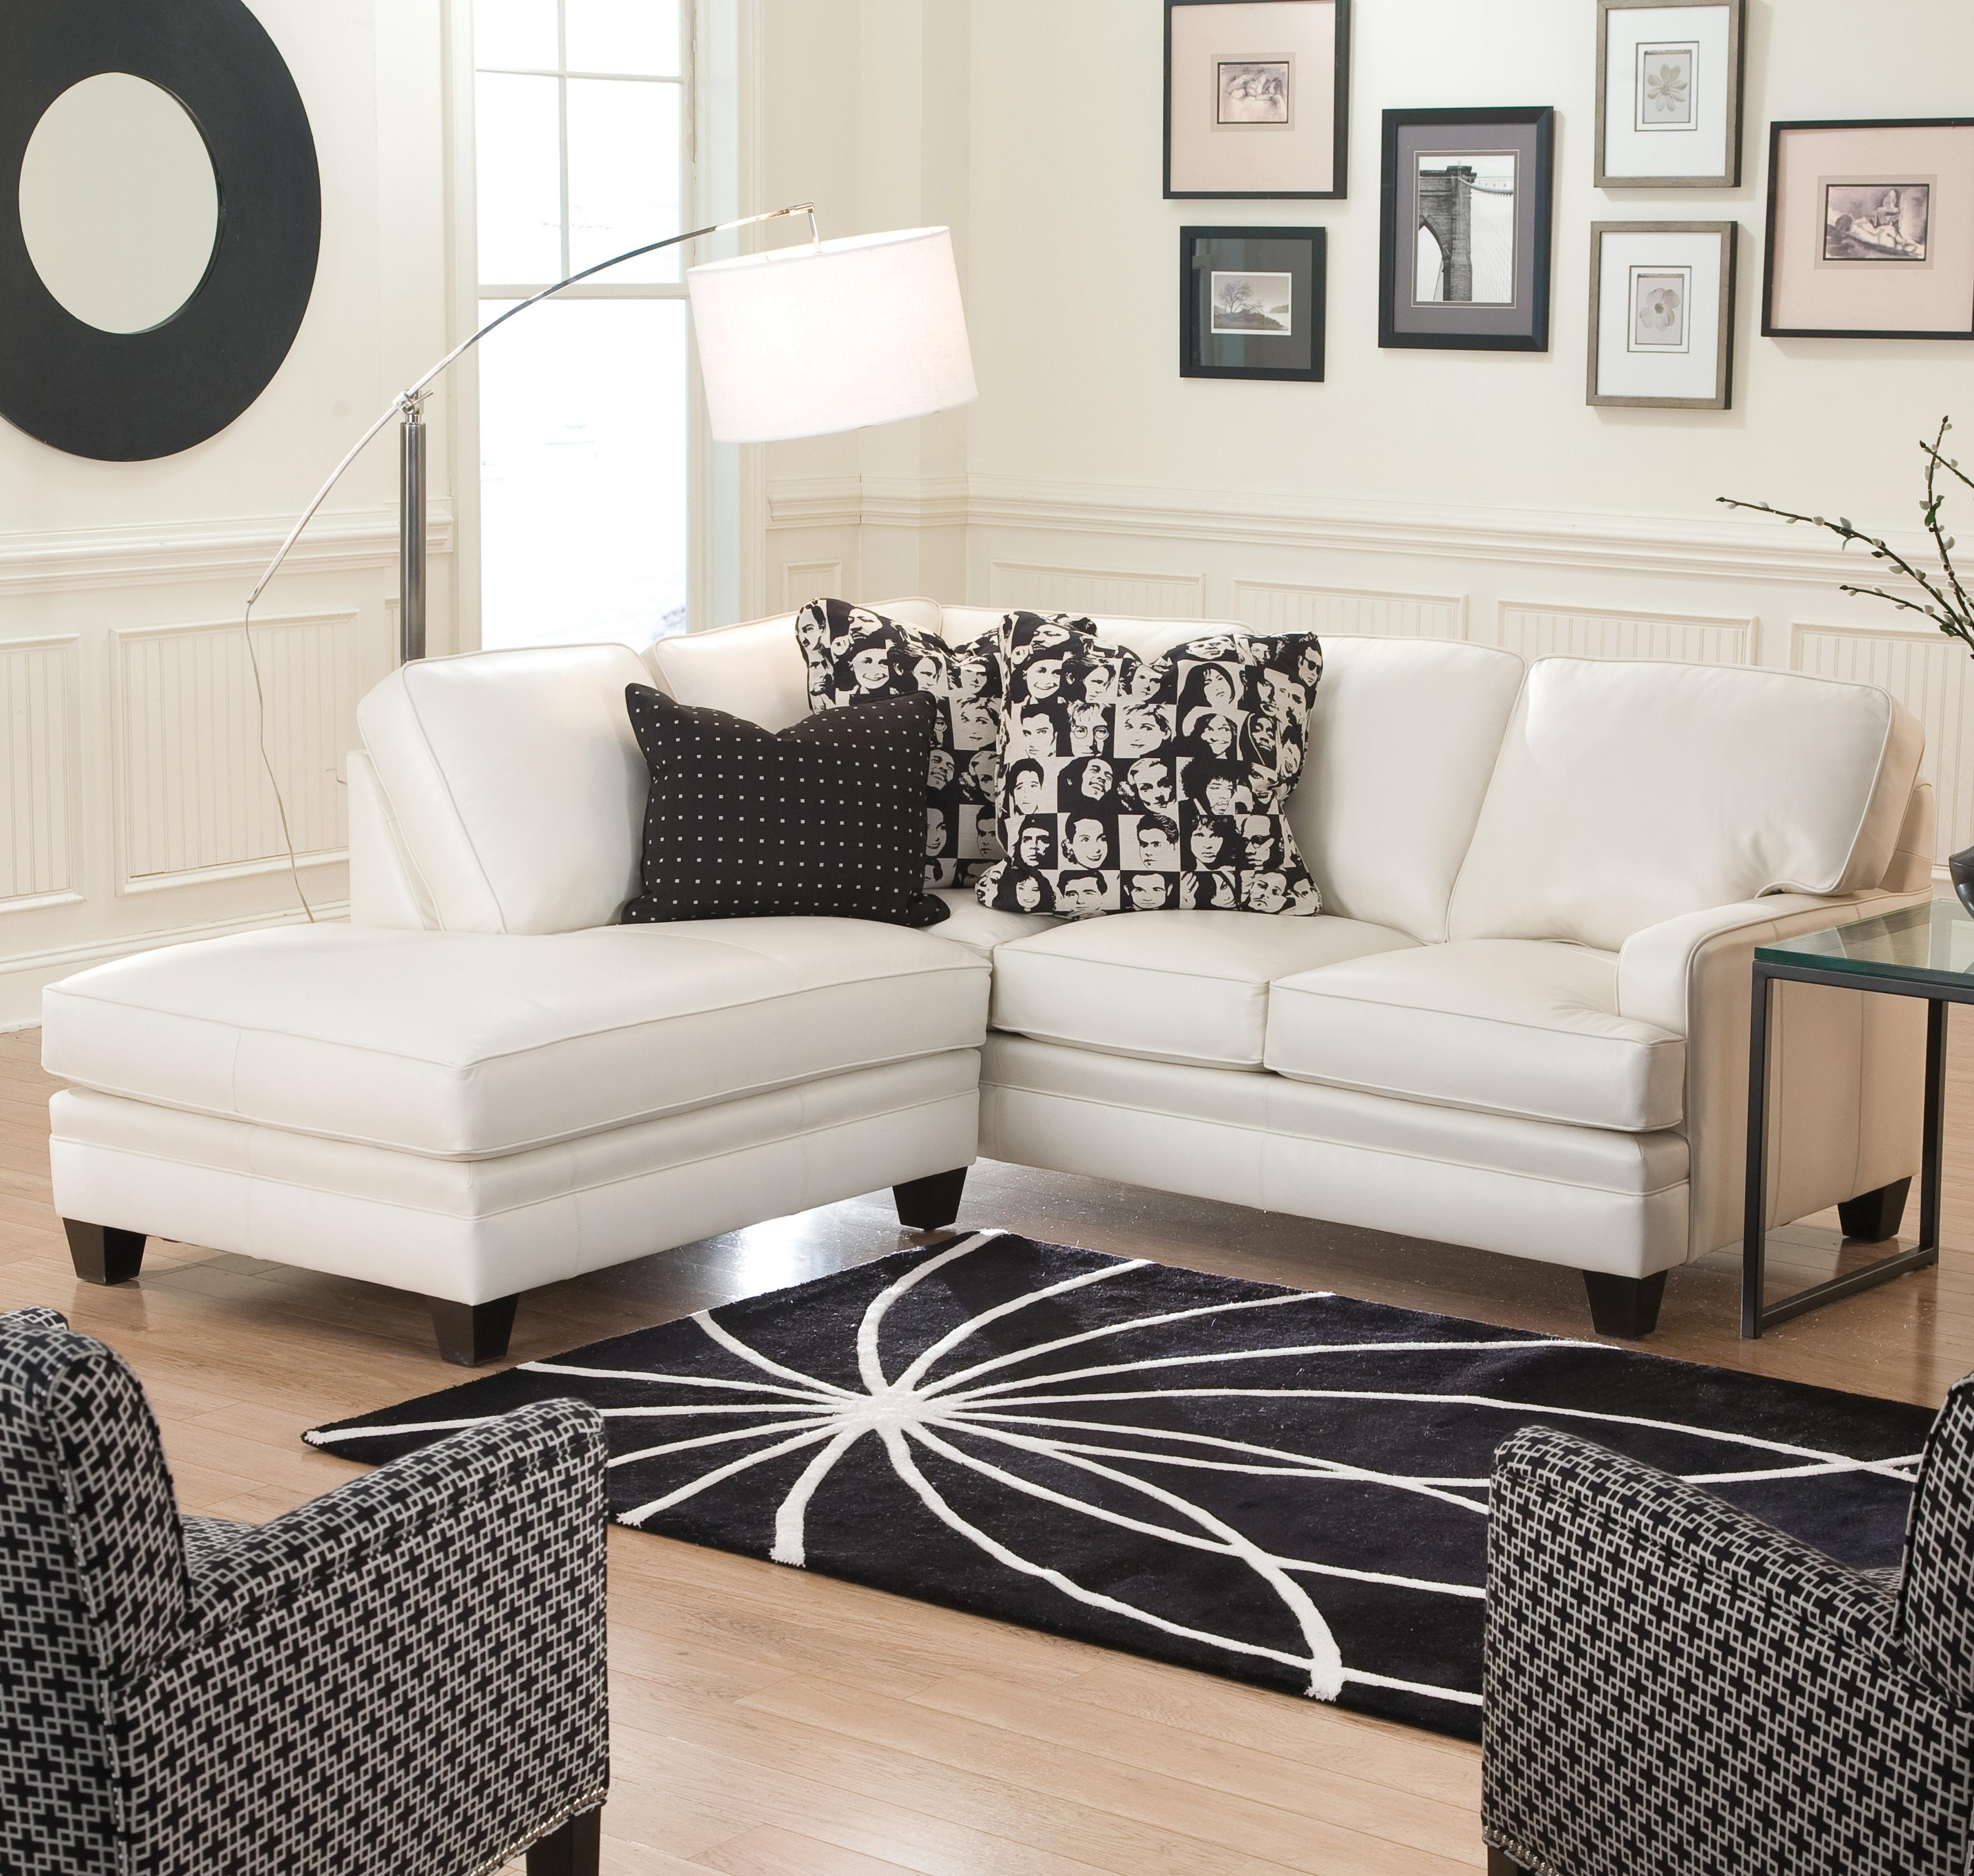 Small Sectional Sofa with Contemporary Look : sectional couches for cheap - Sectionals, Sofas & Couches